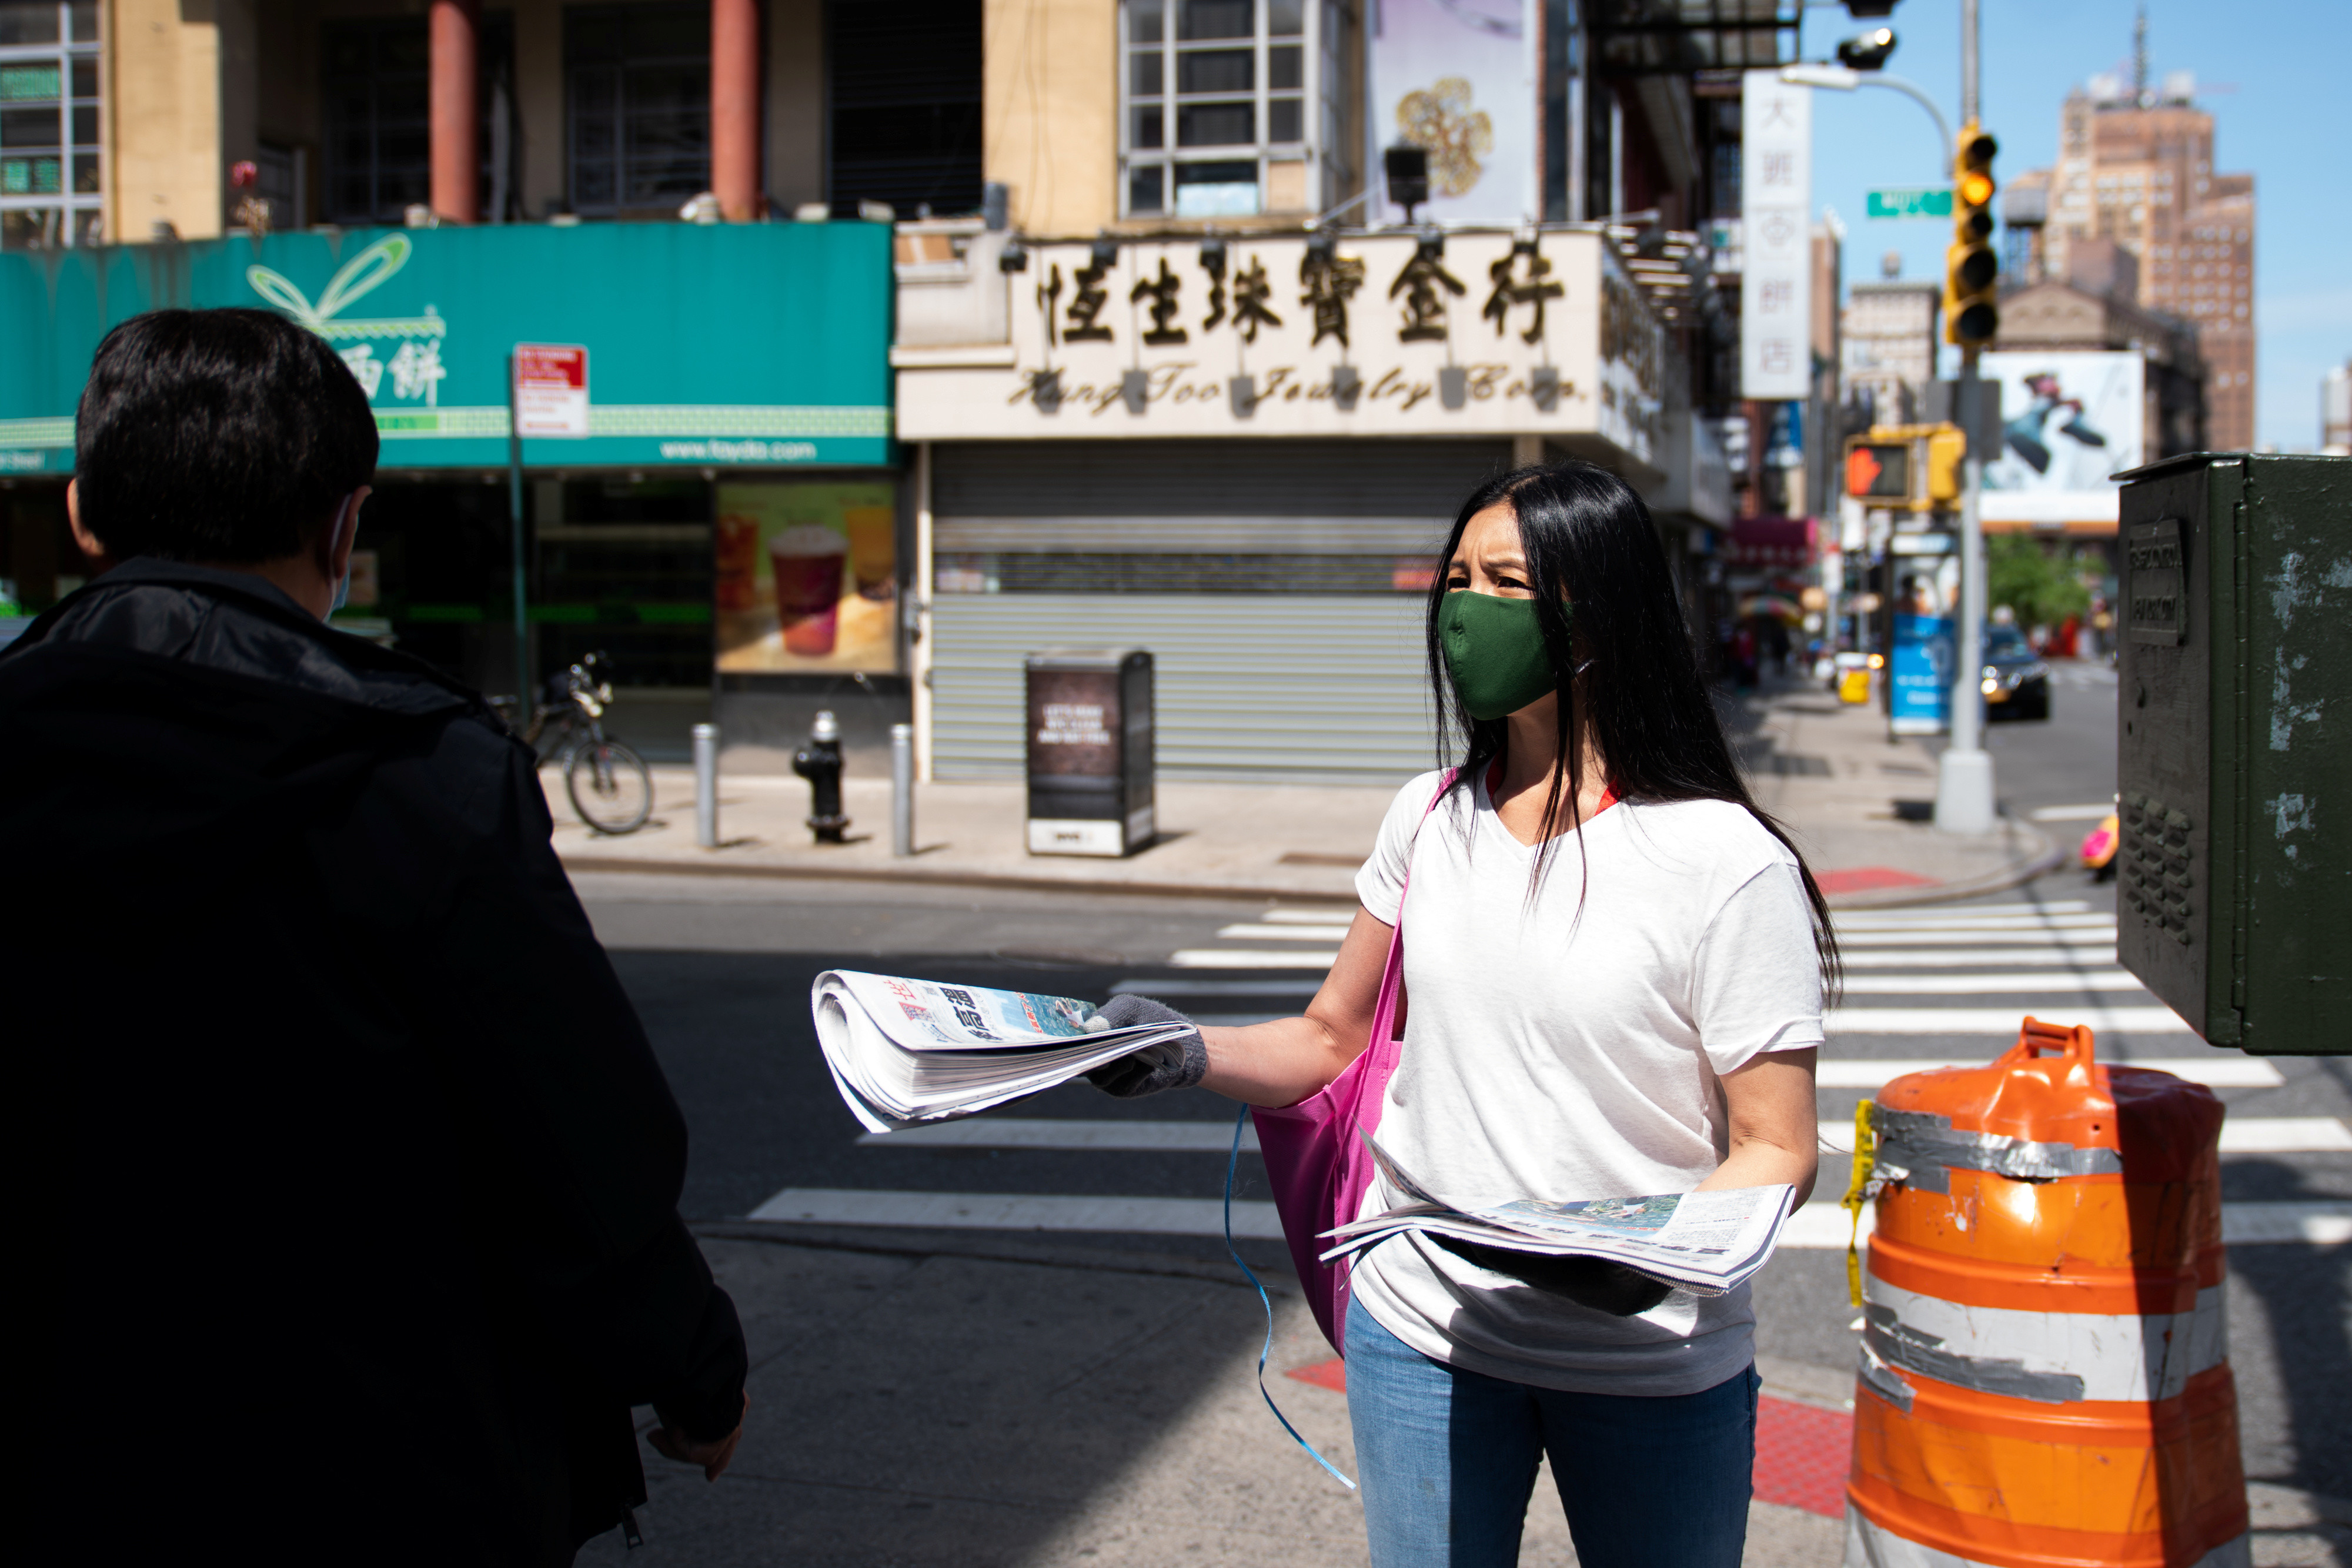 Shirley Ng, a volunteer for the Chinatown Block Watch neighborhood patrol group, distributes newspaper in Chinatown during the outbreak of the coronavirus disease (COVID-19) in New York City, New York, U.S., May 17, 2020. Picture taken May 17,2020. REUTERS/Jeenah Moon - RC2BYG9N432A